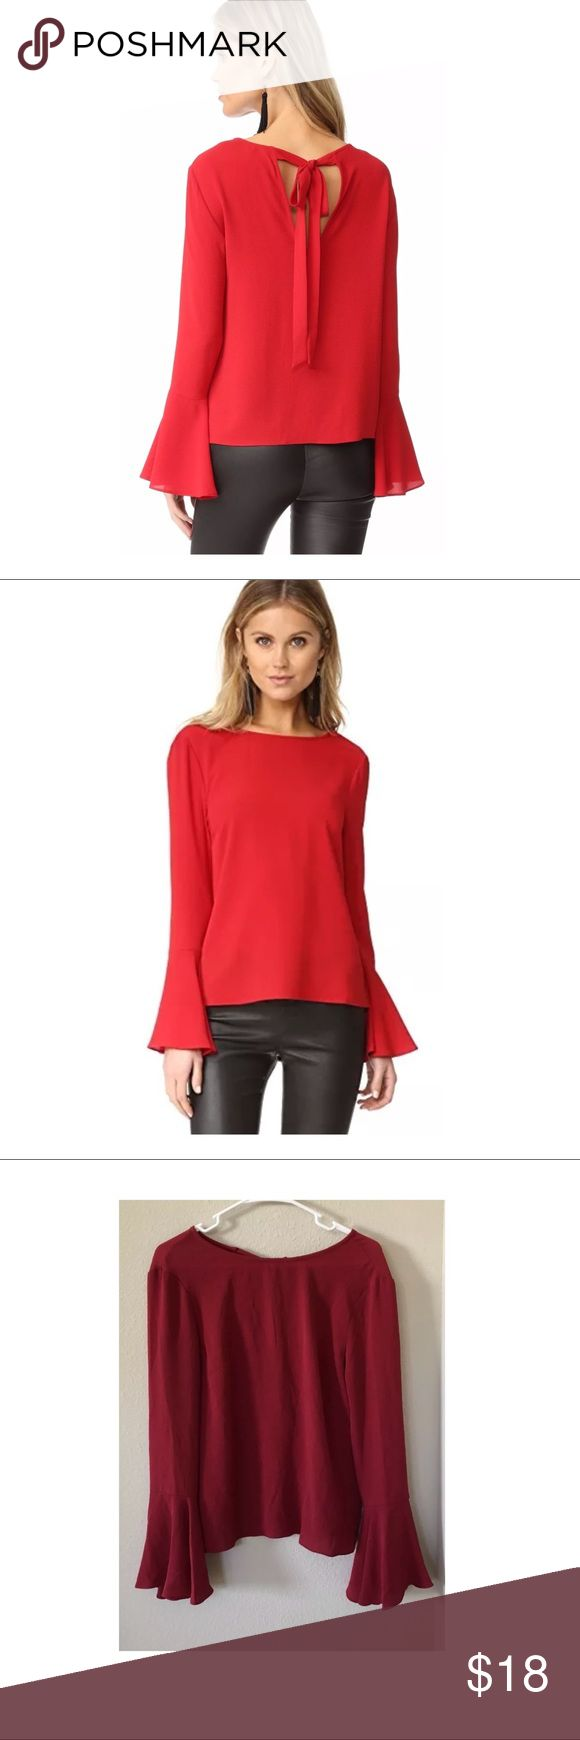 """$59 NEW WAYF for Nordstrom 'Winning Hand' Blouse $59 NEW WAYF for Nordstrom 'Winning Hand' Bell Sleeve Blouse Red ~XS~  New without tags. Retails for $59 + Tax. Model to show fit   Red Soft, lightweight Adjustable tie behind back Open back   Size XS  Measures approximately: total length 24"""" bust across 18""""  High end department store shelf pull- new without tags. May have had customer contact Designer tag is loose from one of the seams- shown in photos.   PLEASE ASK ANY QUESTIONS BEFORE…"""